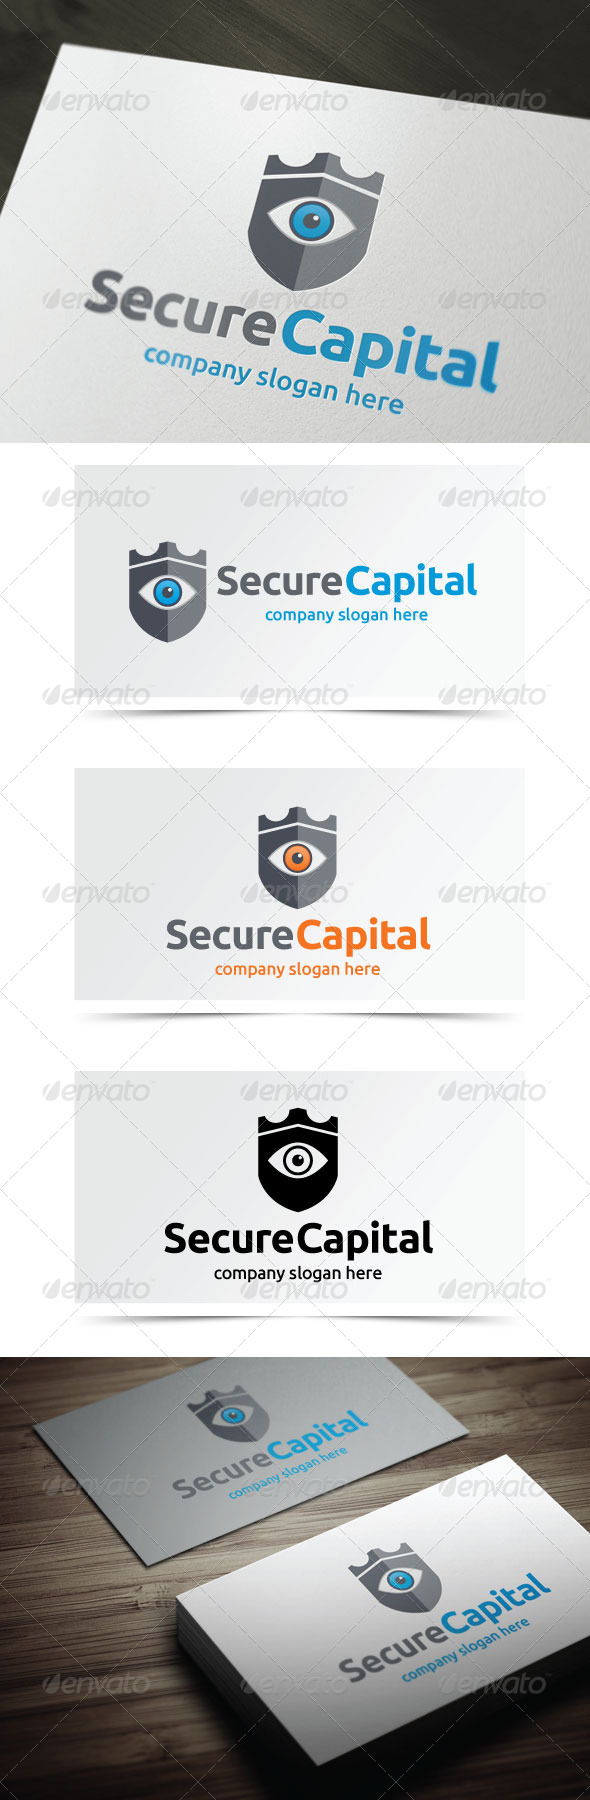 GraphicRiver Secure Capital 5444986